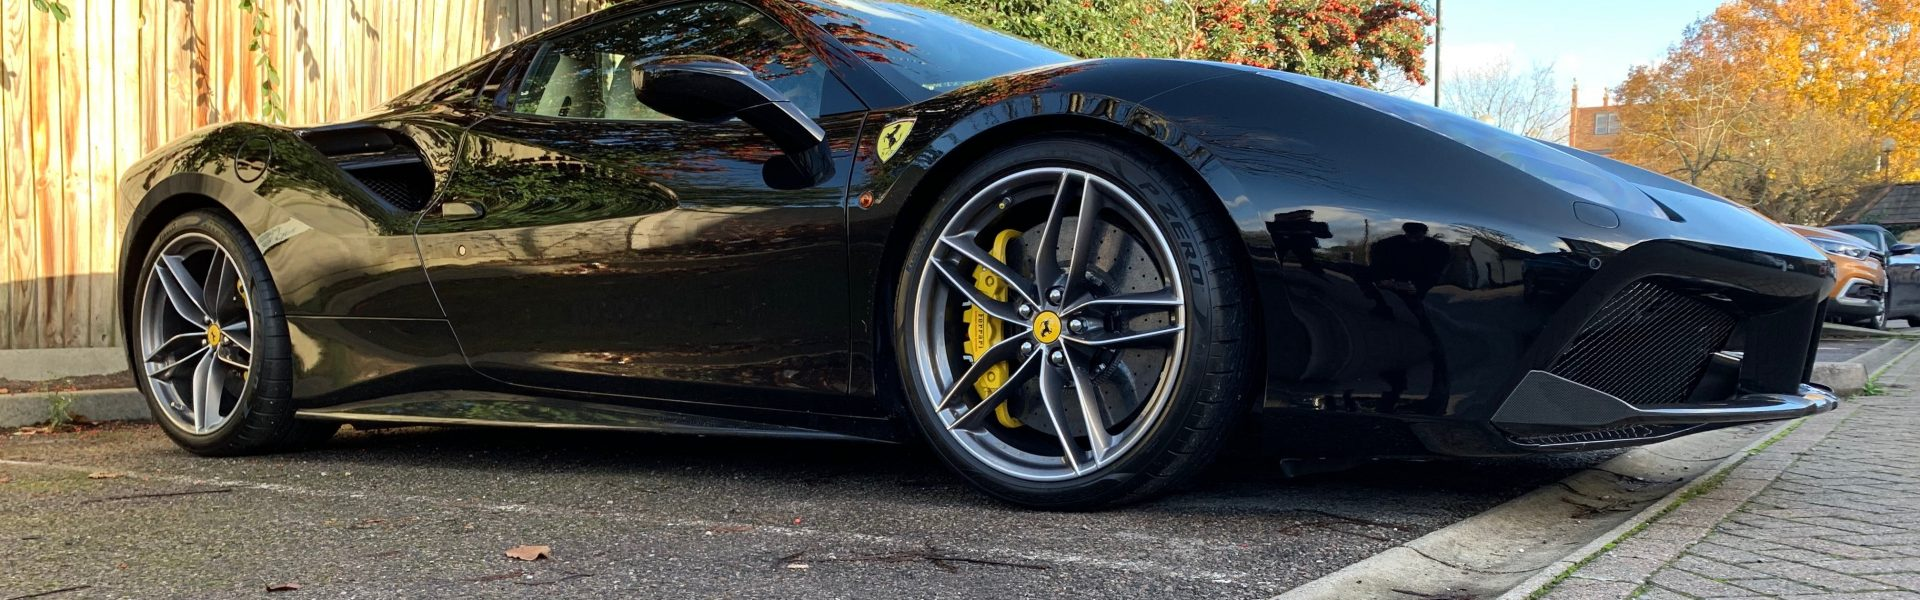 Ferrari 488 Upgrades: Sport Exhaust, Carbon Fibre, and Lowering Springs